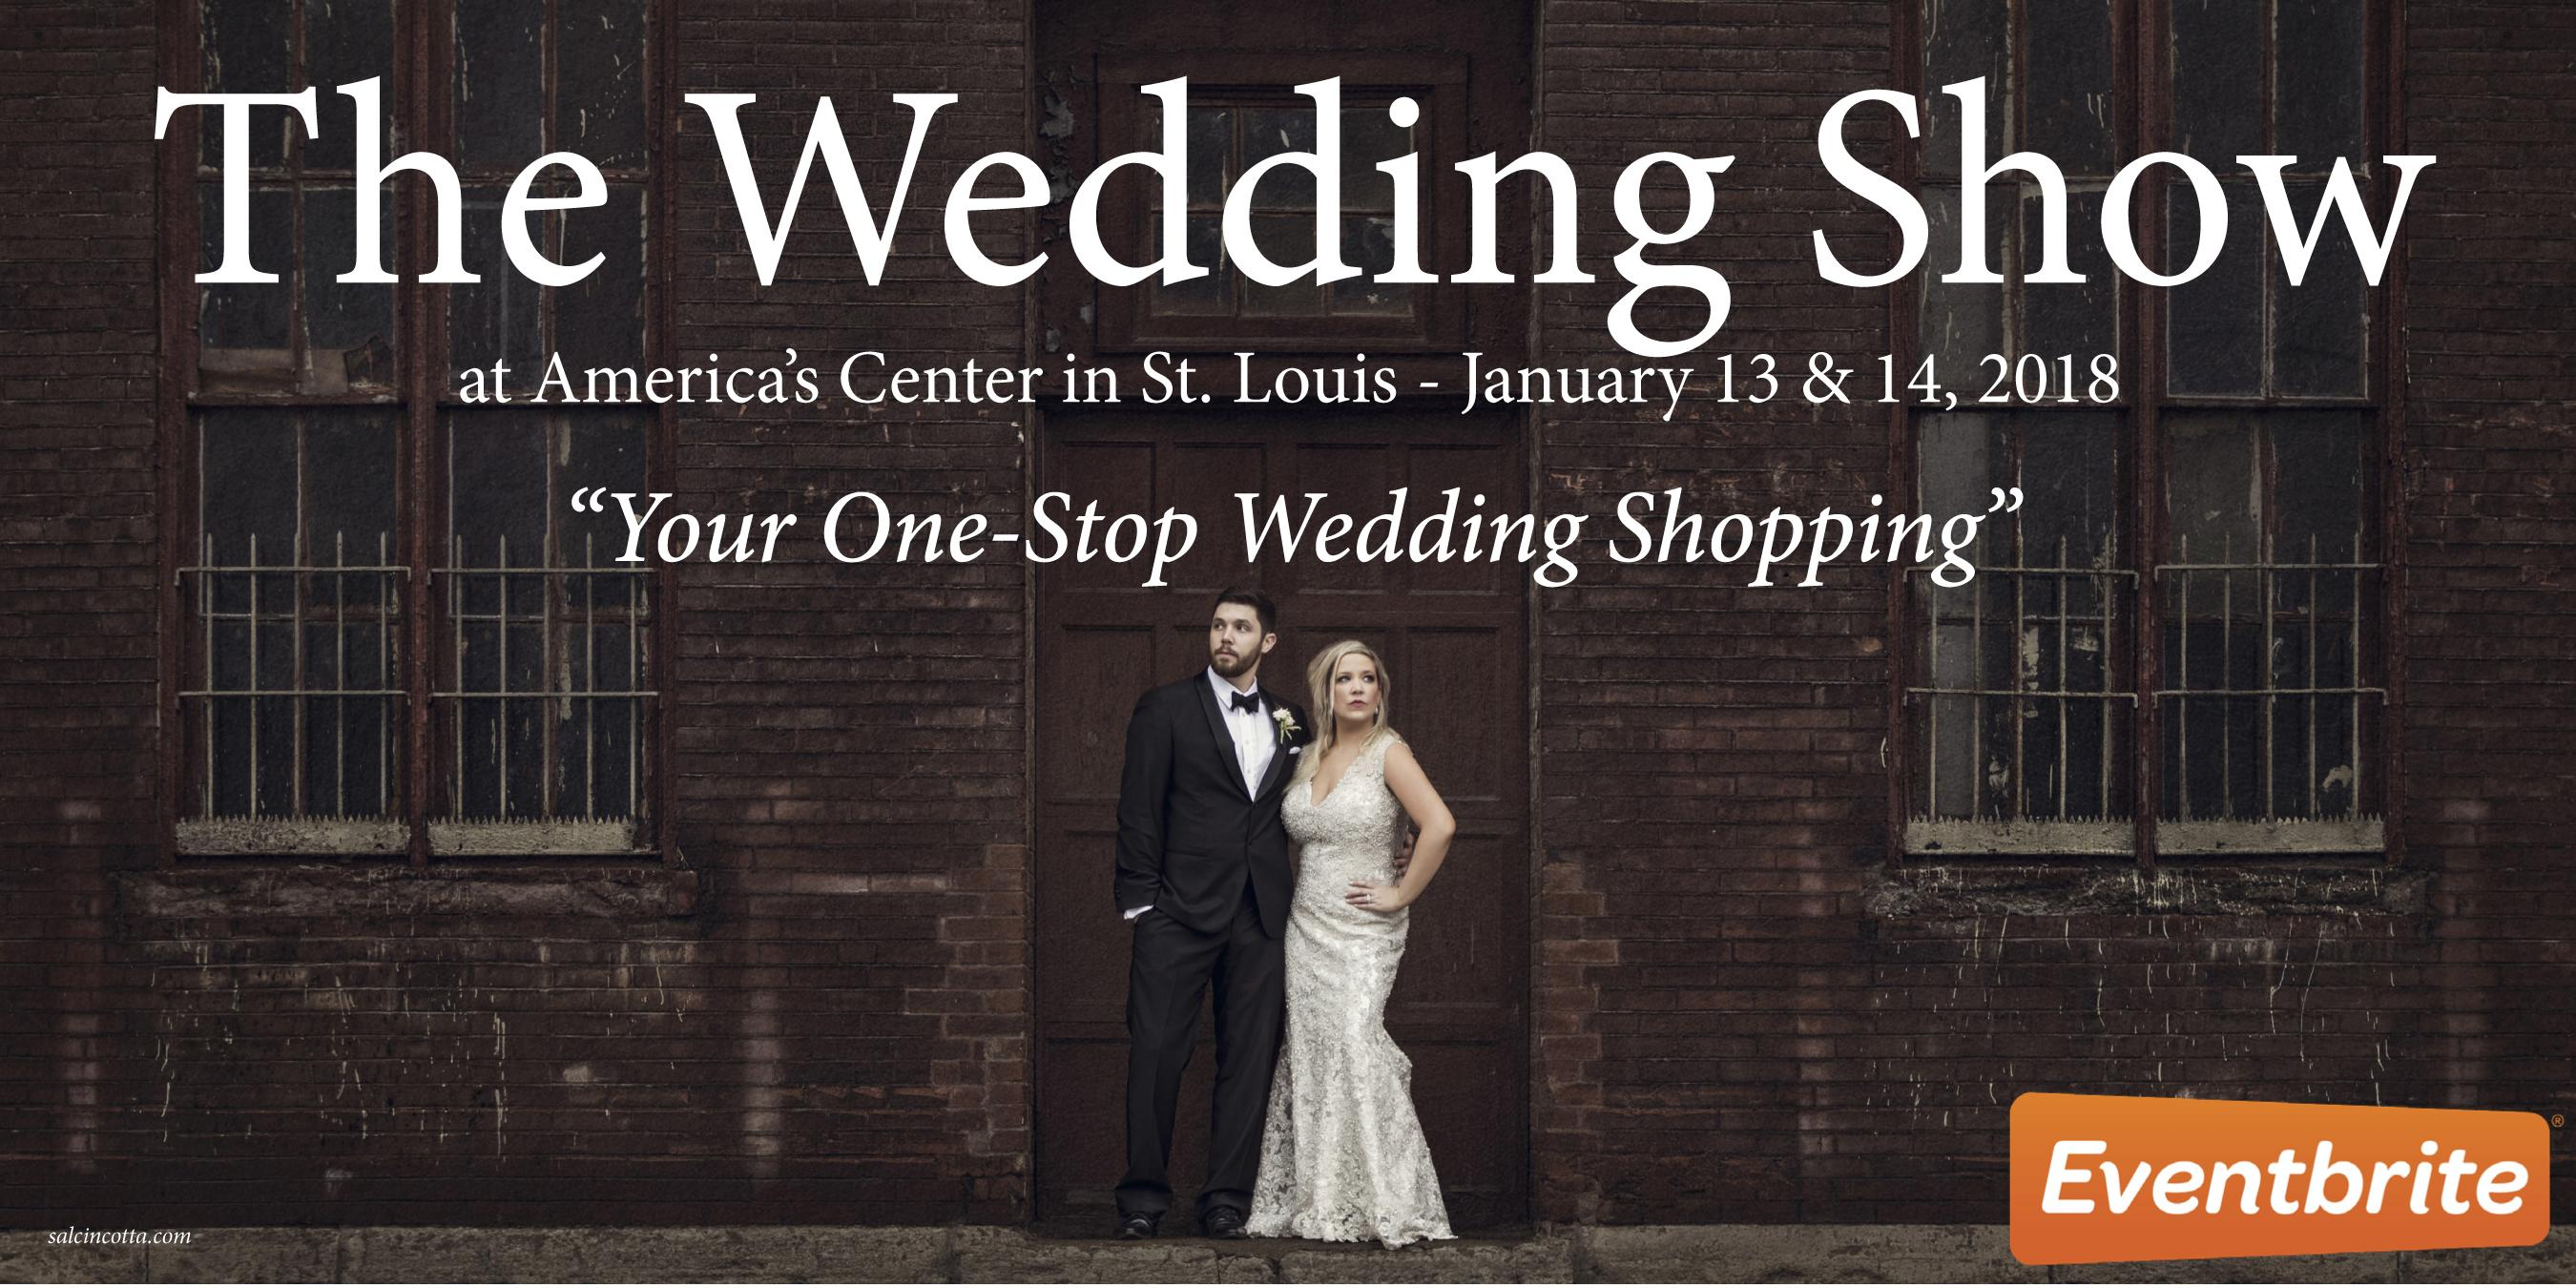 The Wedding Show at America's Center January 2018